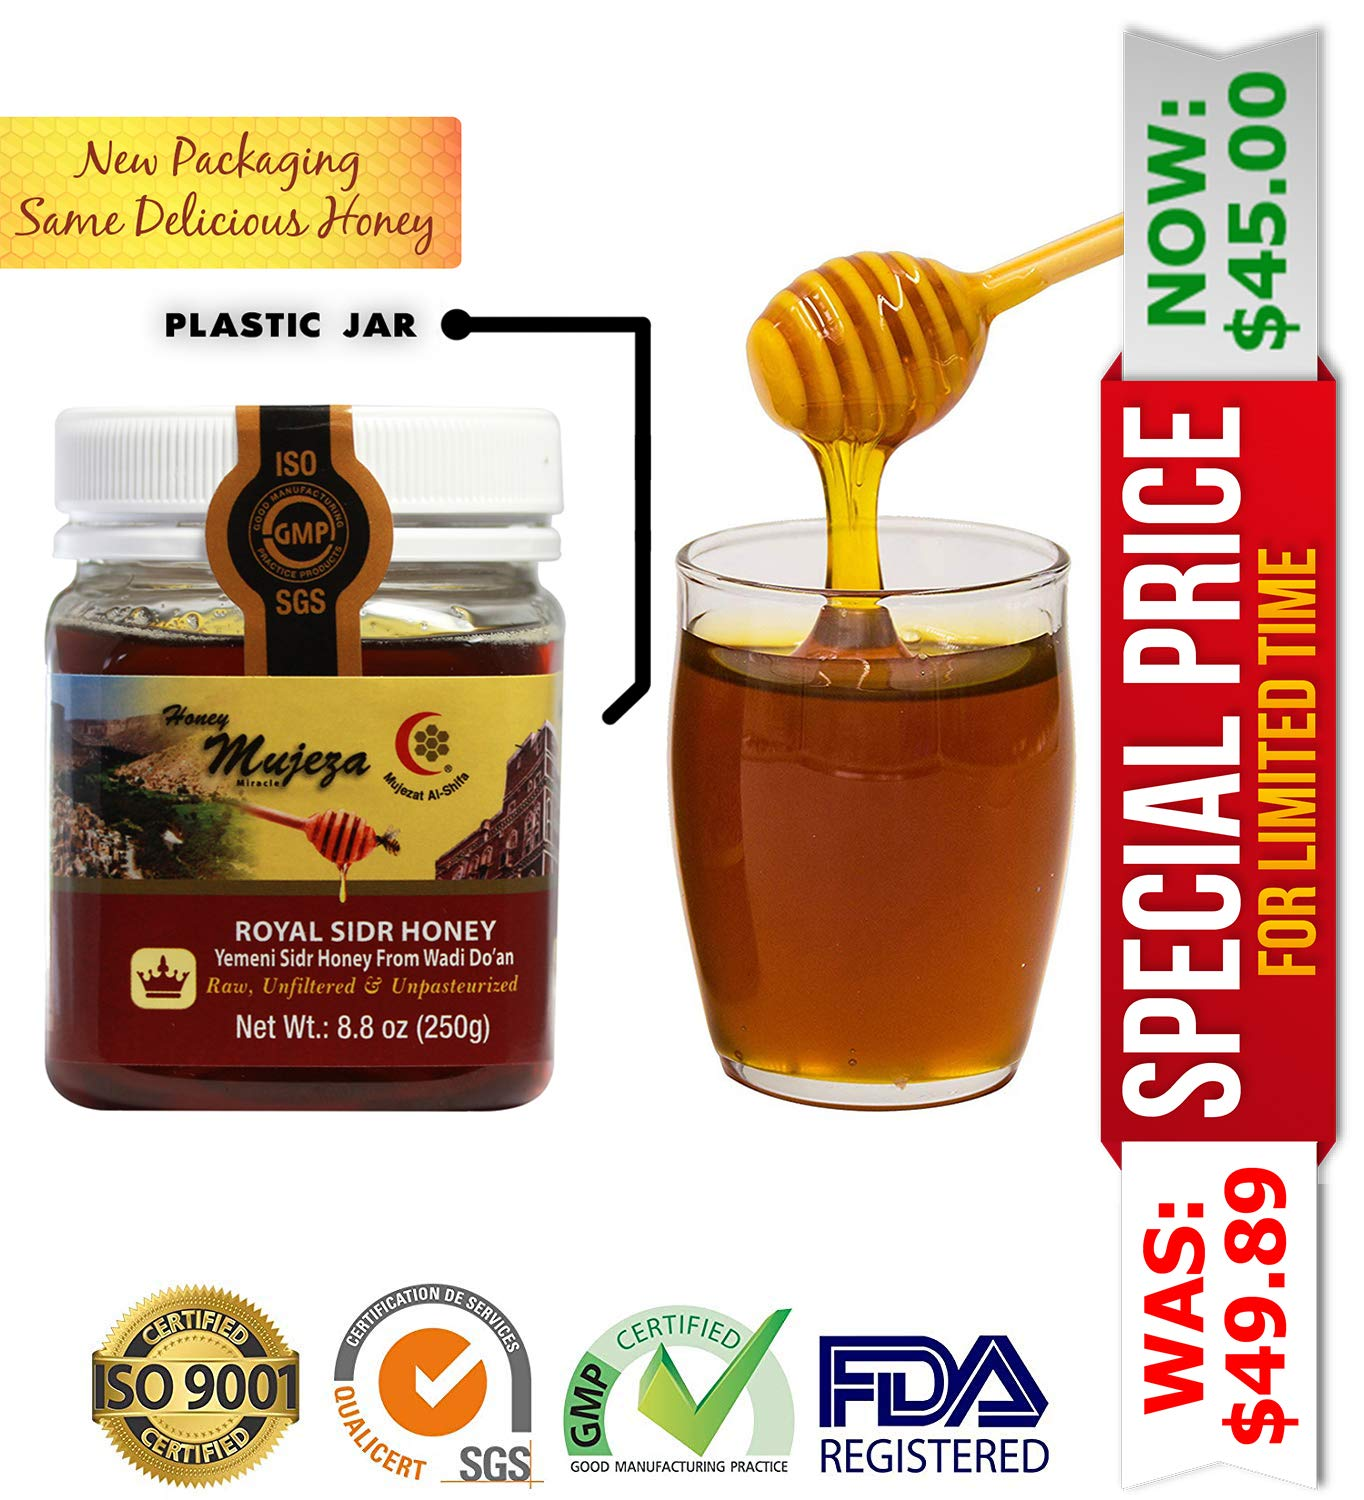 Royal Honey (Authentic Yemen Douani Sidr Honey) Save $5 When You Purcahse Bigger Size, 100% Natural Raw Honey (250g / 8.8oz) عسل السدر الجبلي - عسل المعجزة - عسل يمني أصلي - عسل نحل طبيعي